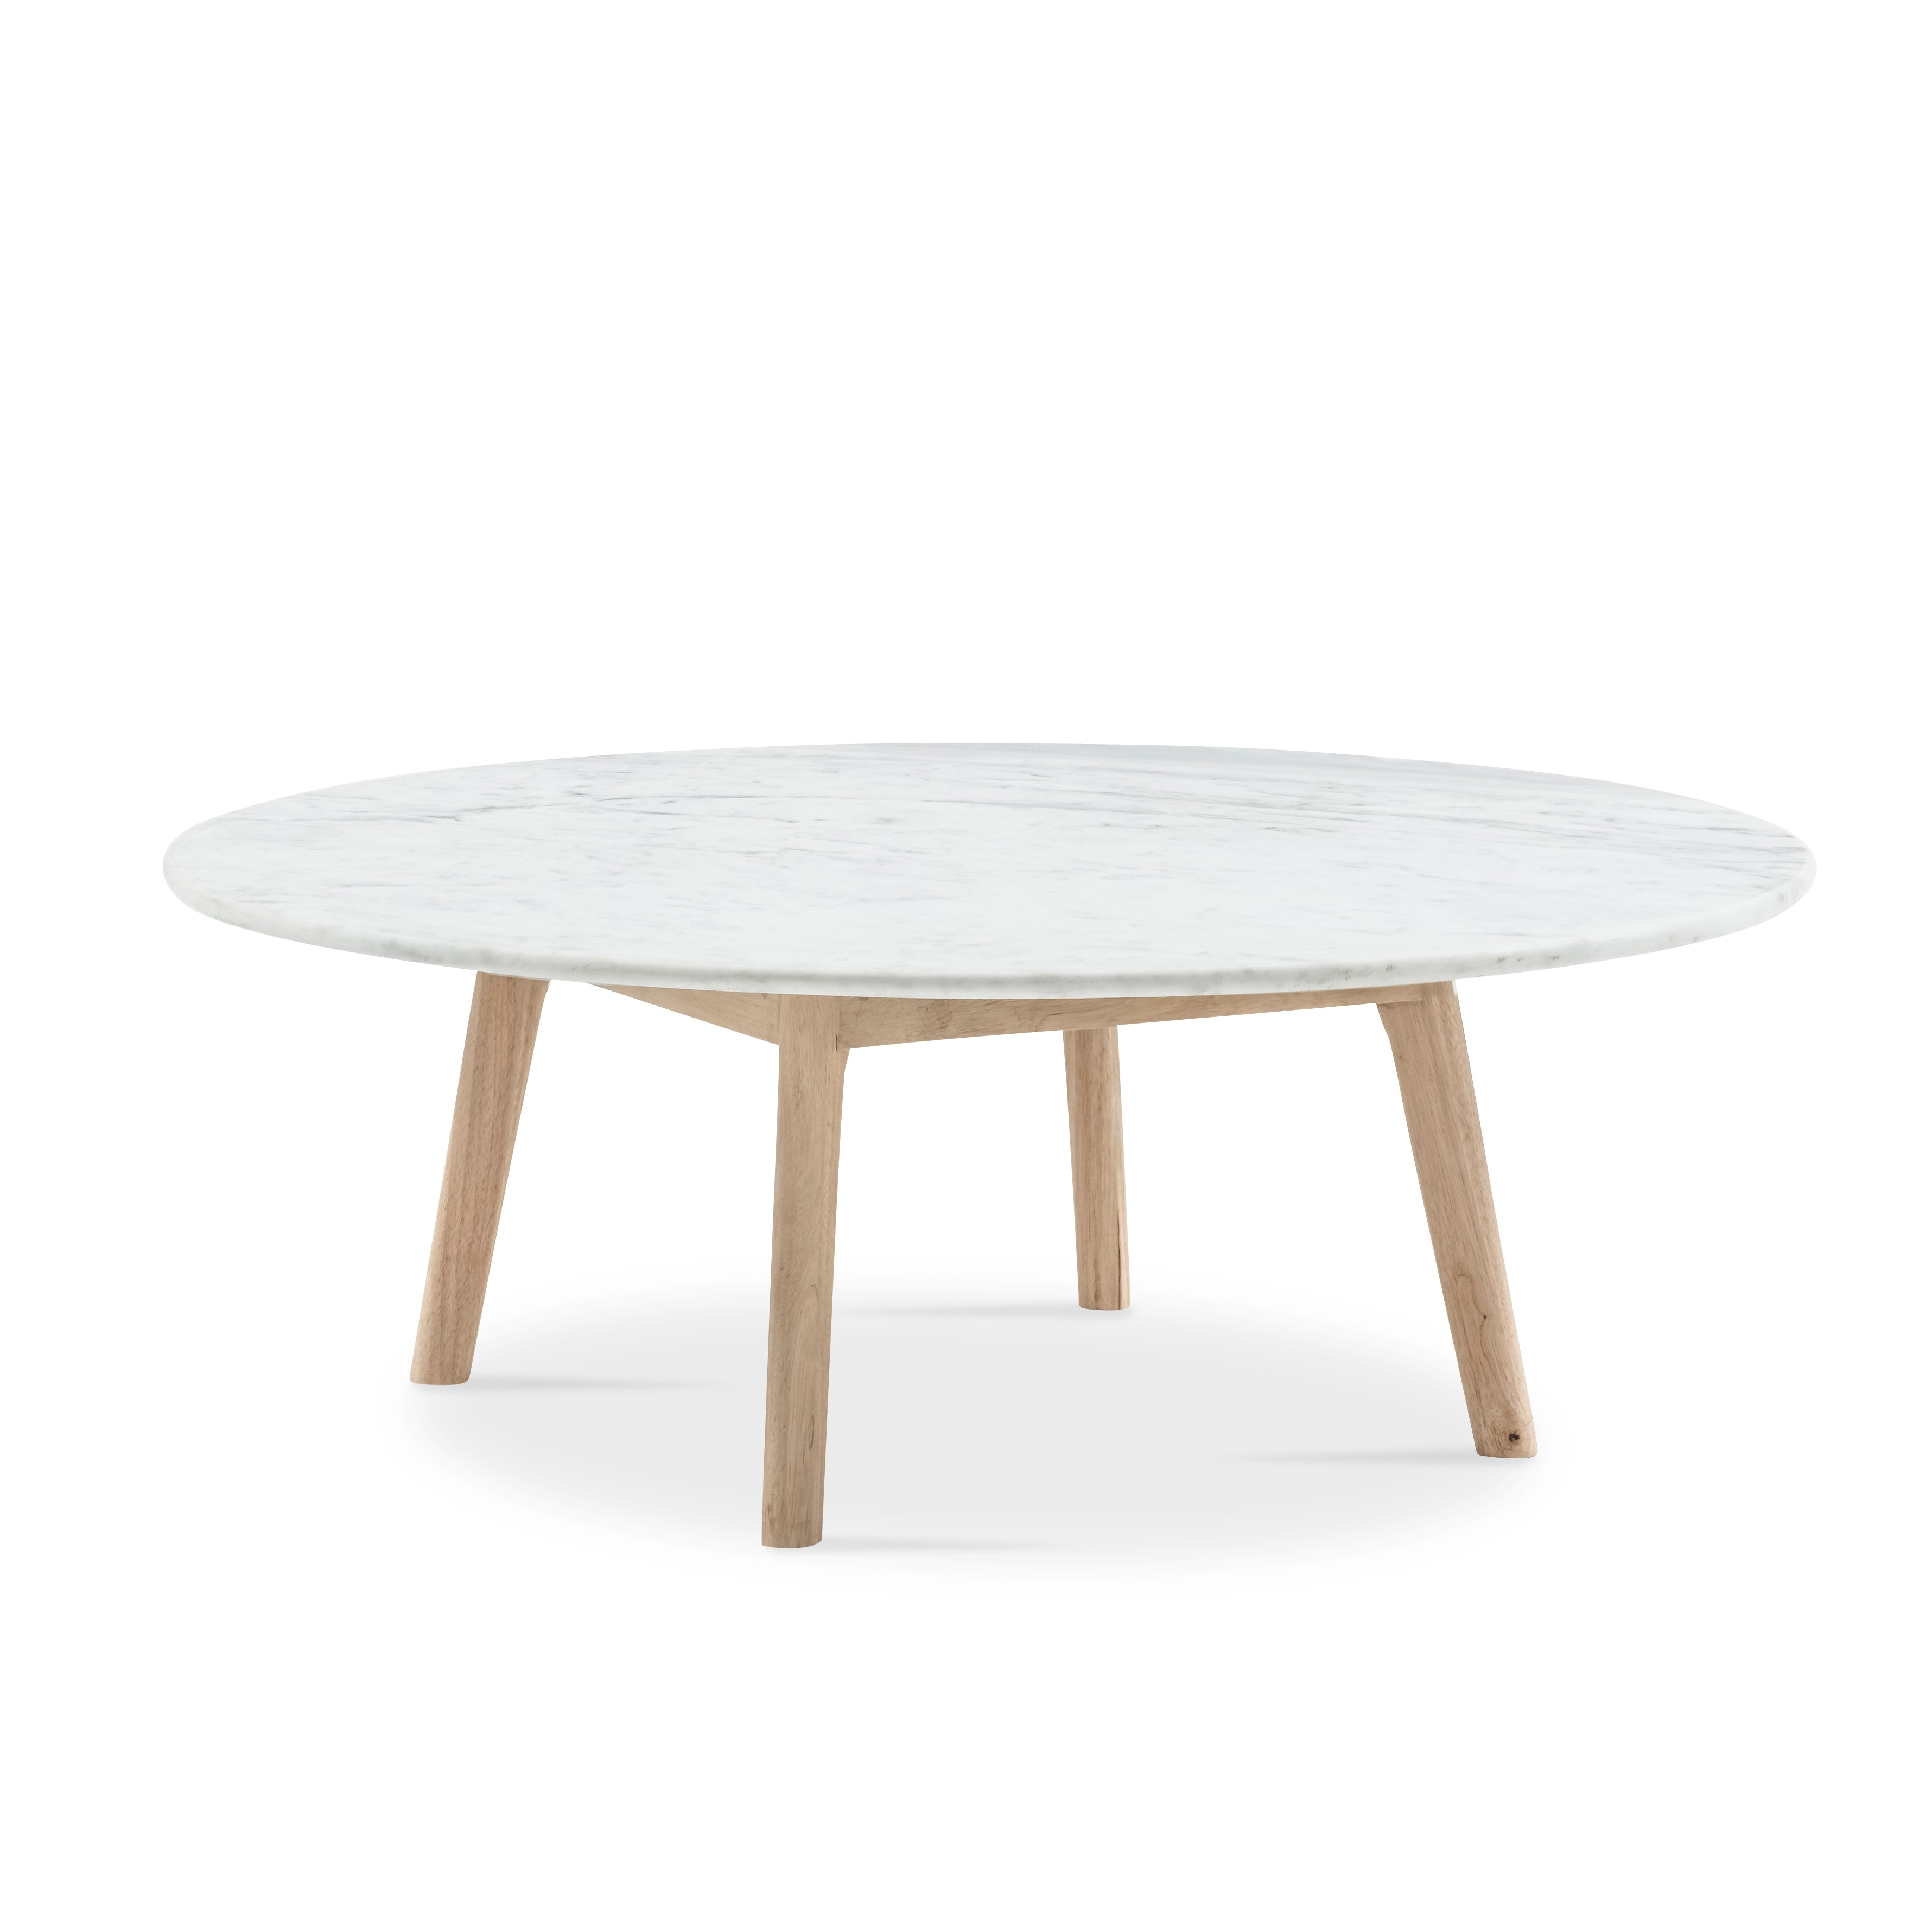 White Marble Coffee Table.Scandi Low Round Marble Coffee Table